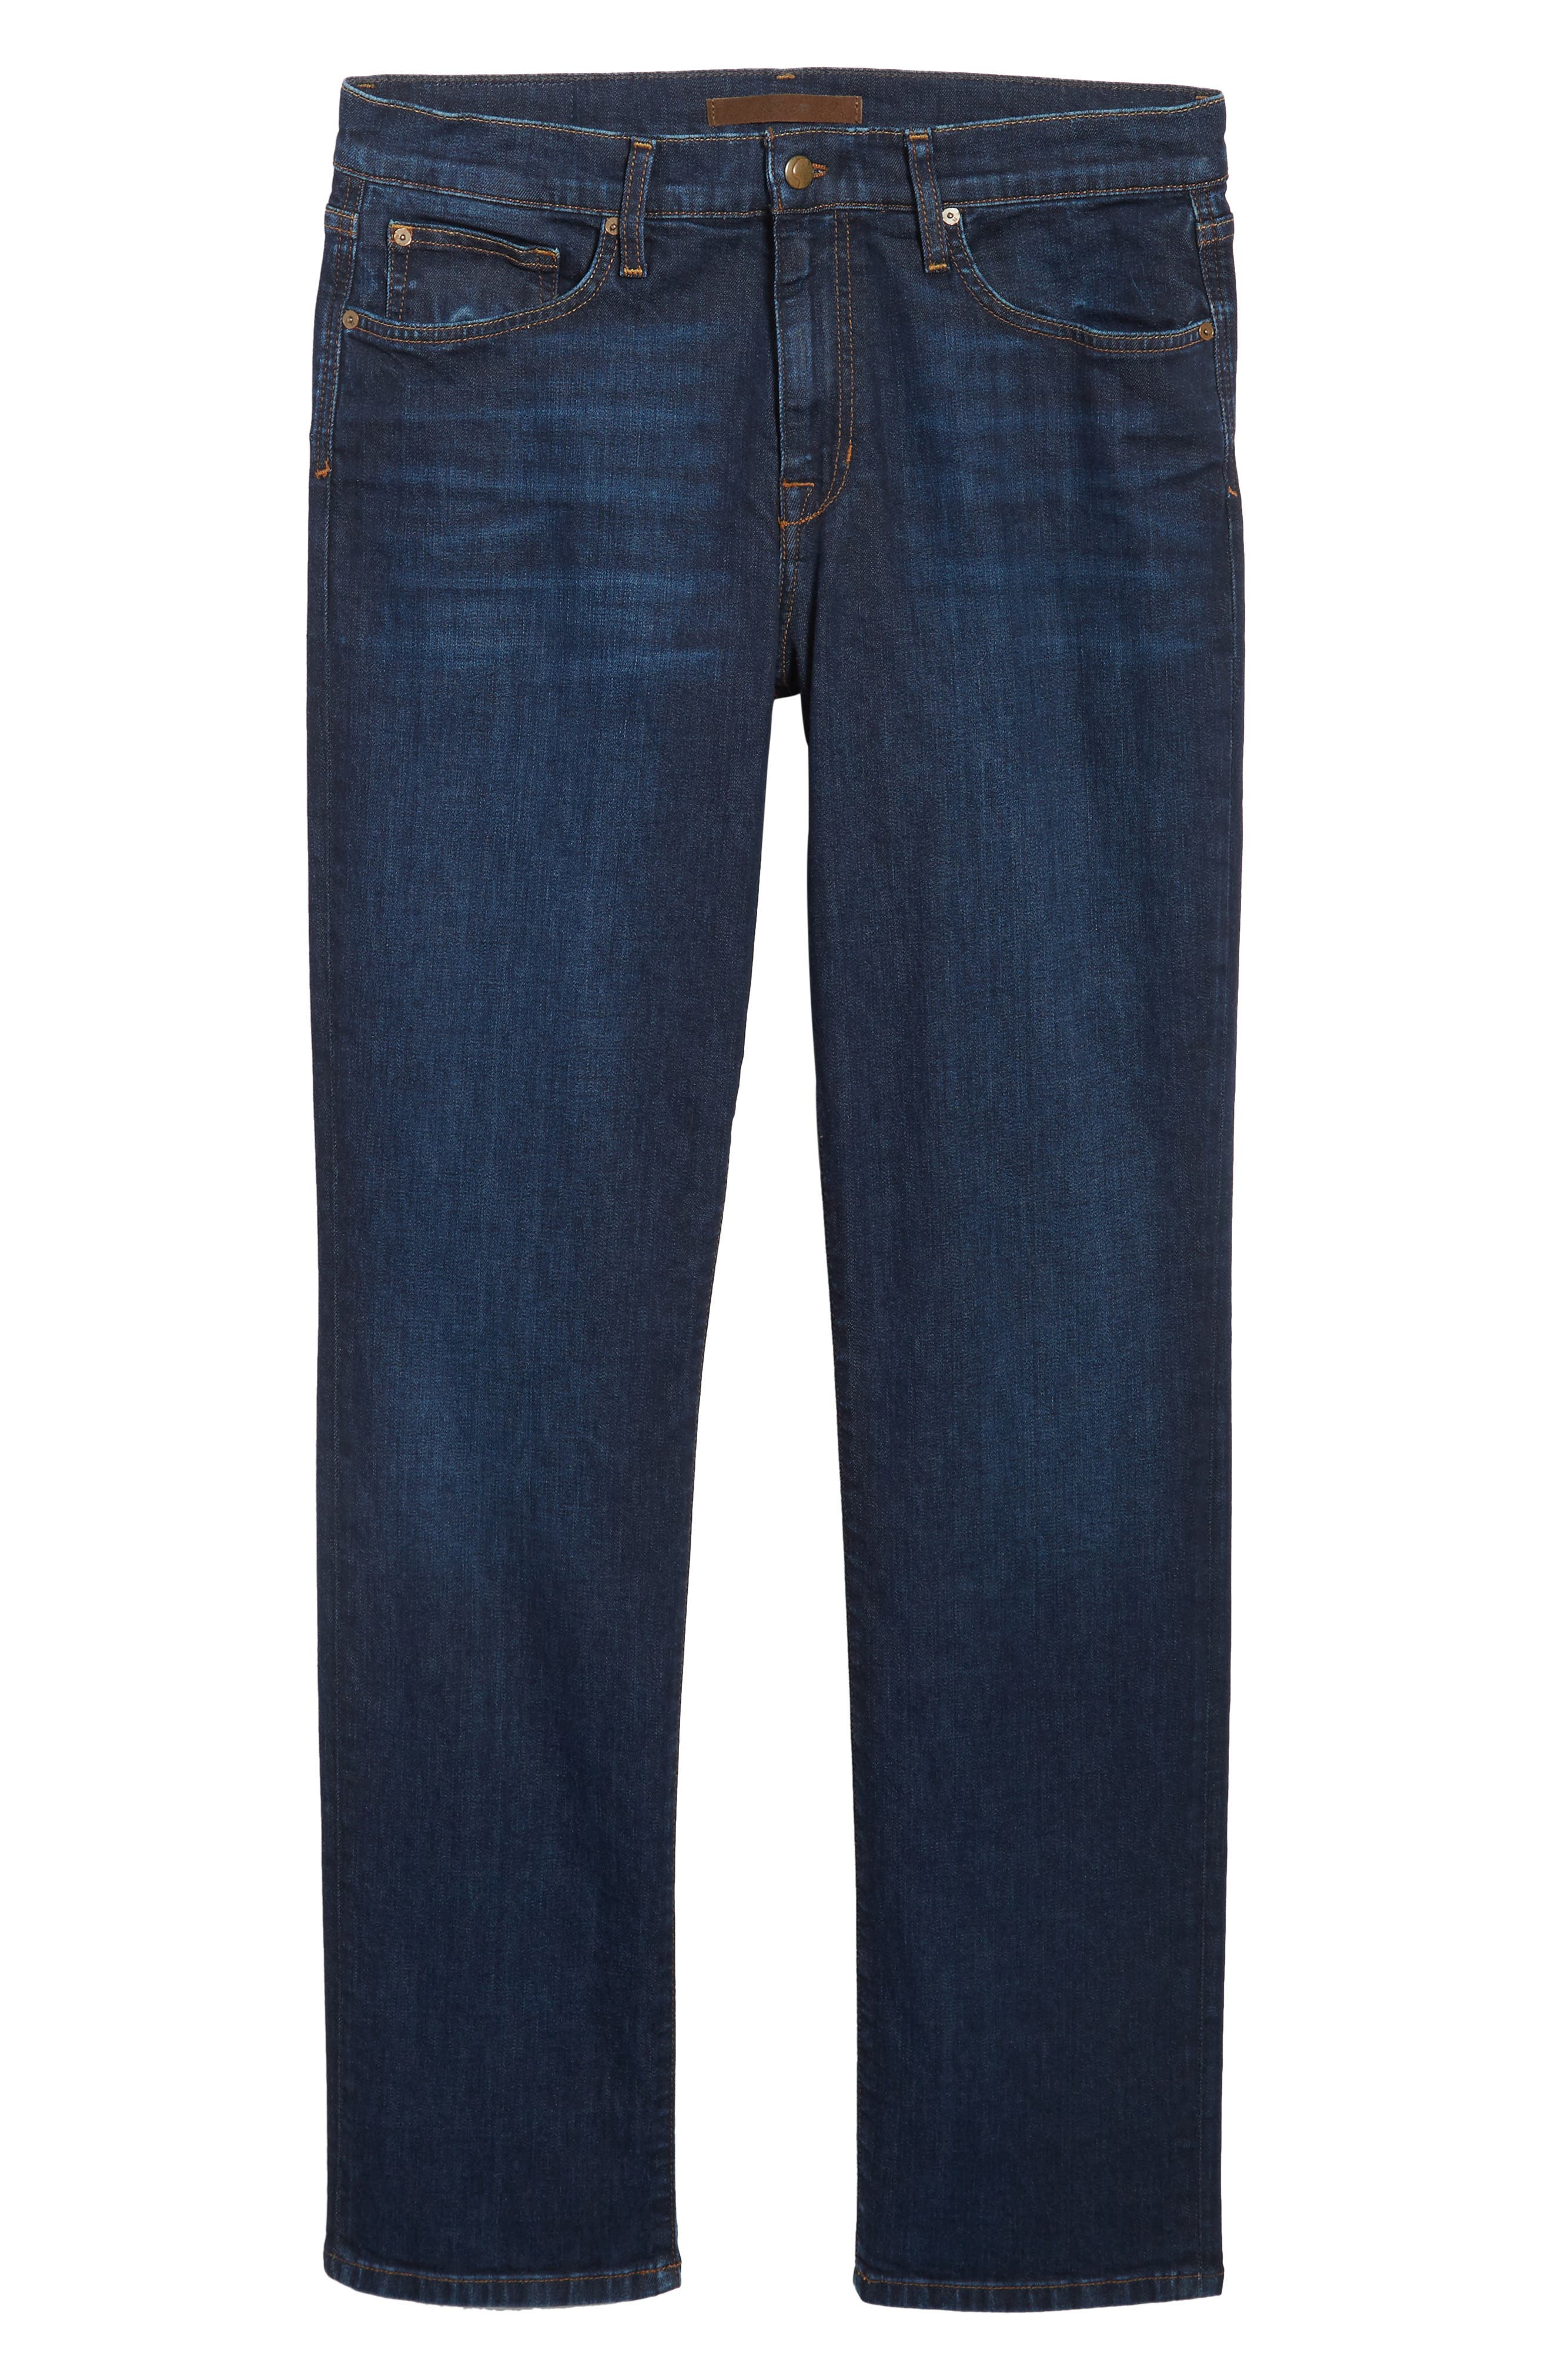 Classic Straight Fit Jeans,                             Alternate thumbnail 6, color,                             Harding